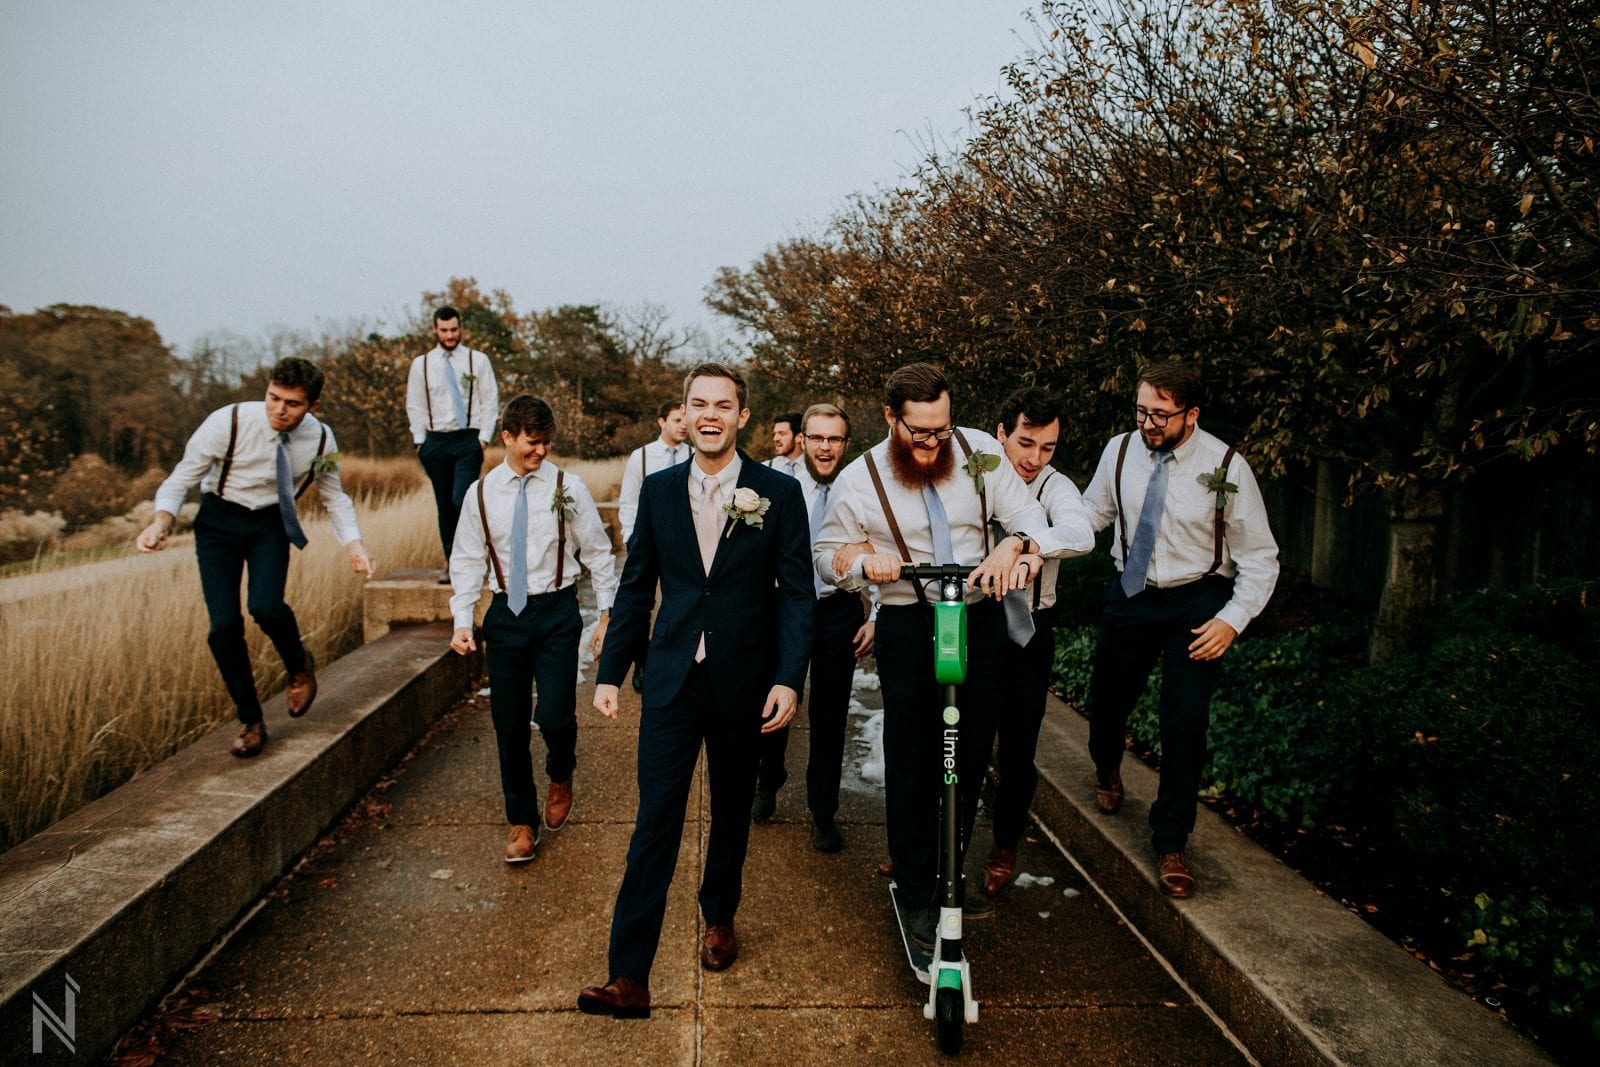 Funny groomsmen limebike scooter picture at worlds fair pavilion in Forest Park in St. Louis, Missouri